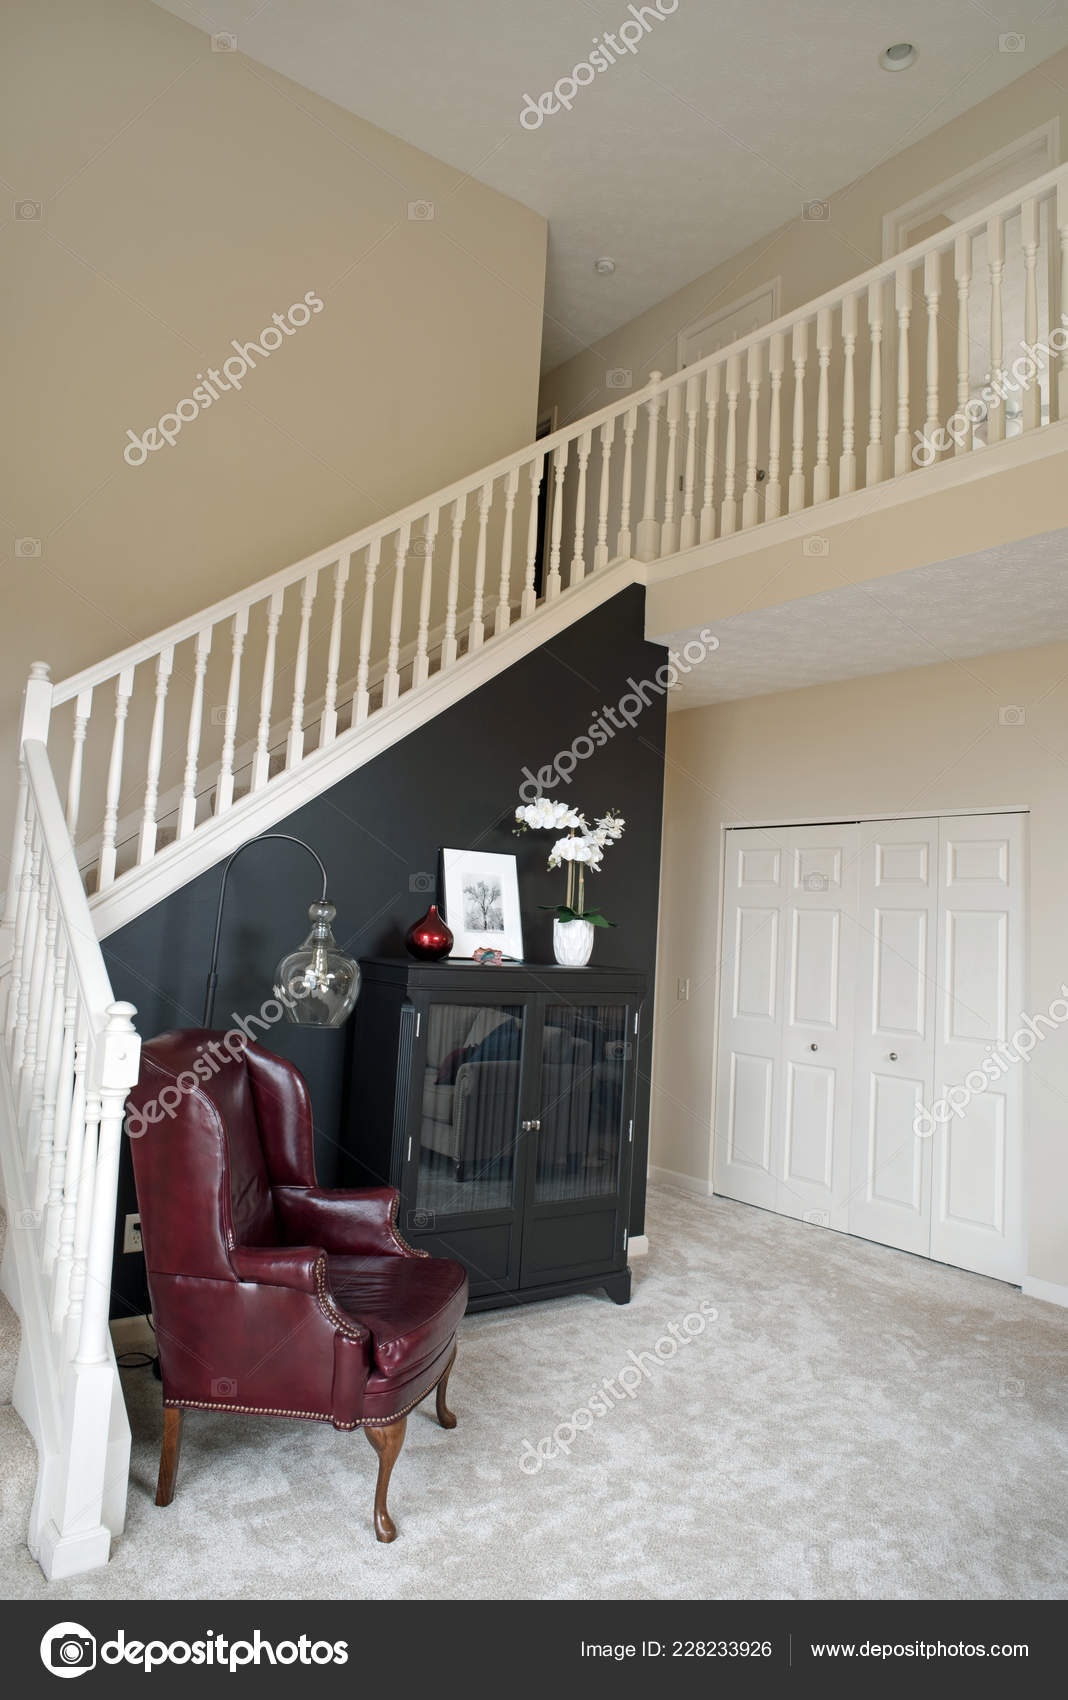 Black Accent Walls Condo Stairway Black Accent Wall Stock Photo Lawcain 228233926